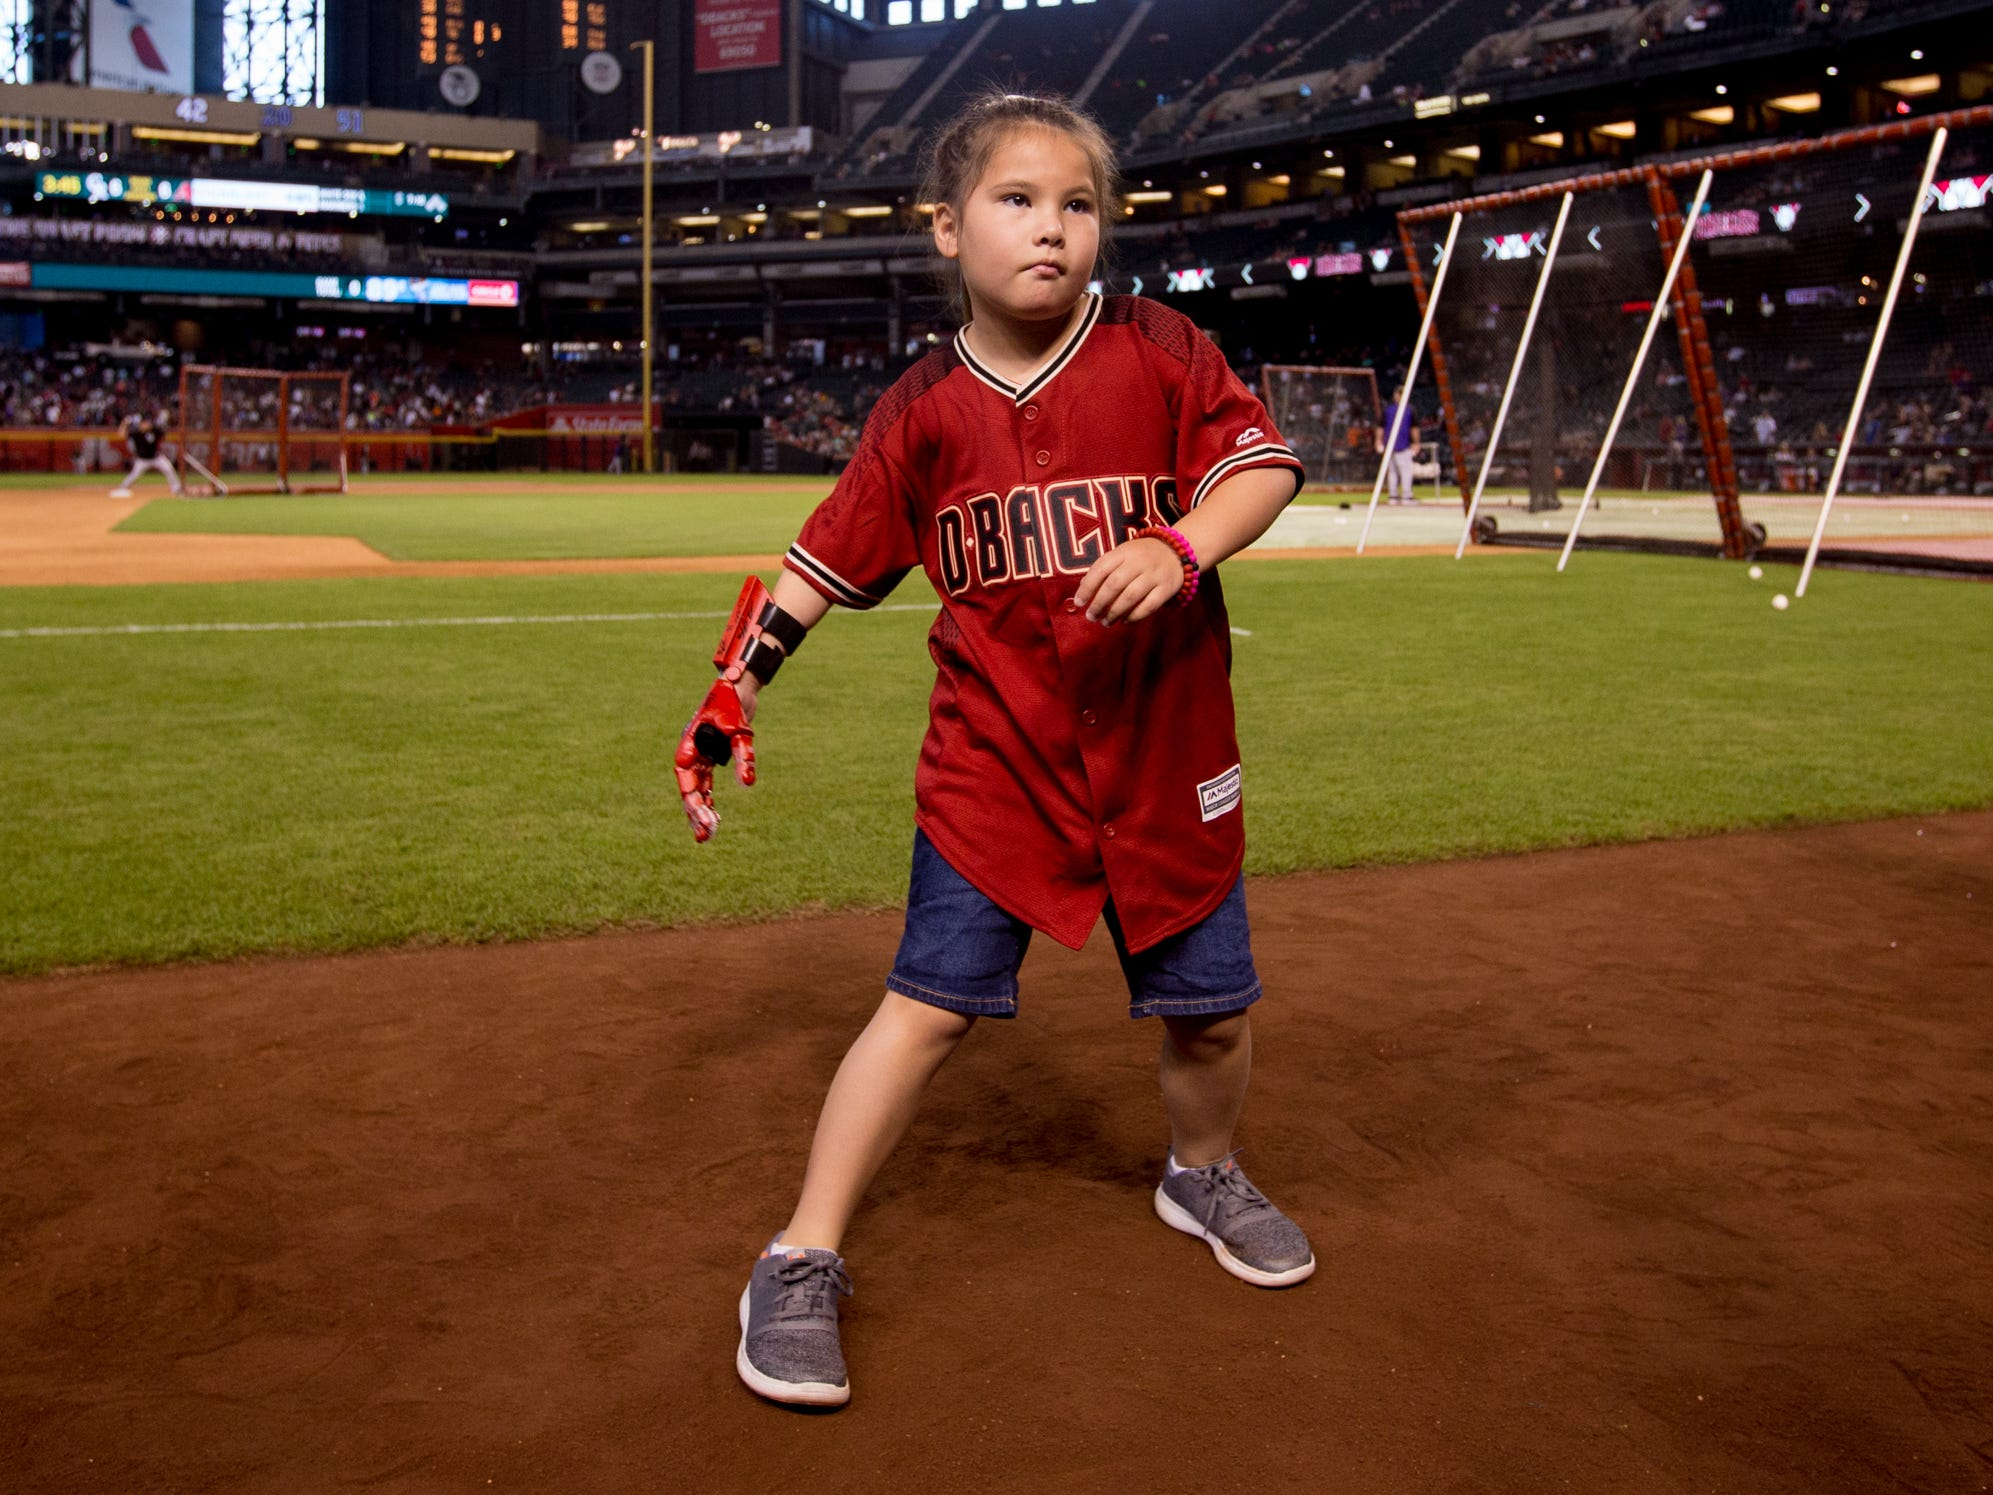 Hailey Dawson, 8, of Henderson, Nevada, dances while waiting to throw the ceremonial first pitch on July 21, 2018, before the Arizona Diamondbacks' matchup against the Colorado Rockies at Chase Field in Phoenix, Arizona. Hailey, born with Poland Syndrome, received a 3D-printed prosthetic hand created by engineering students from the University of Nevada Las Vegas.